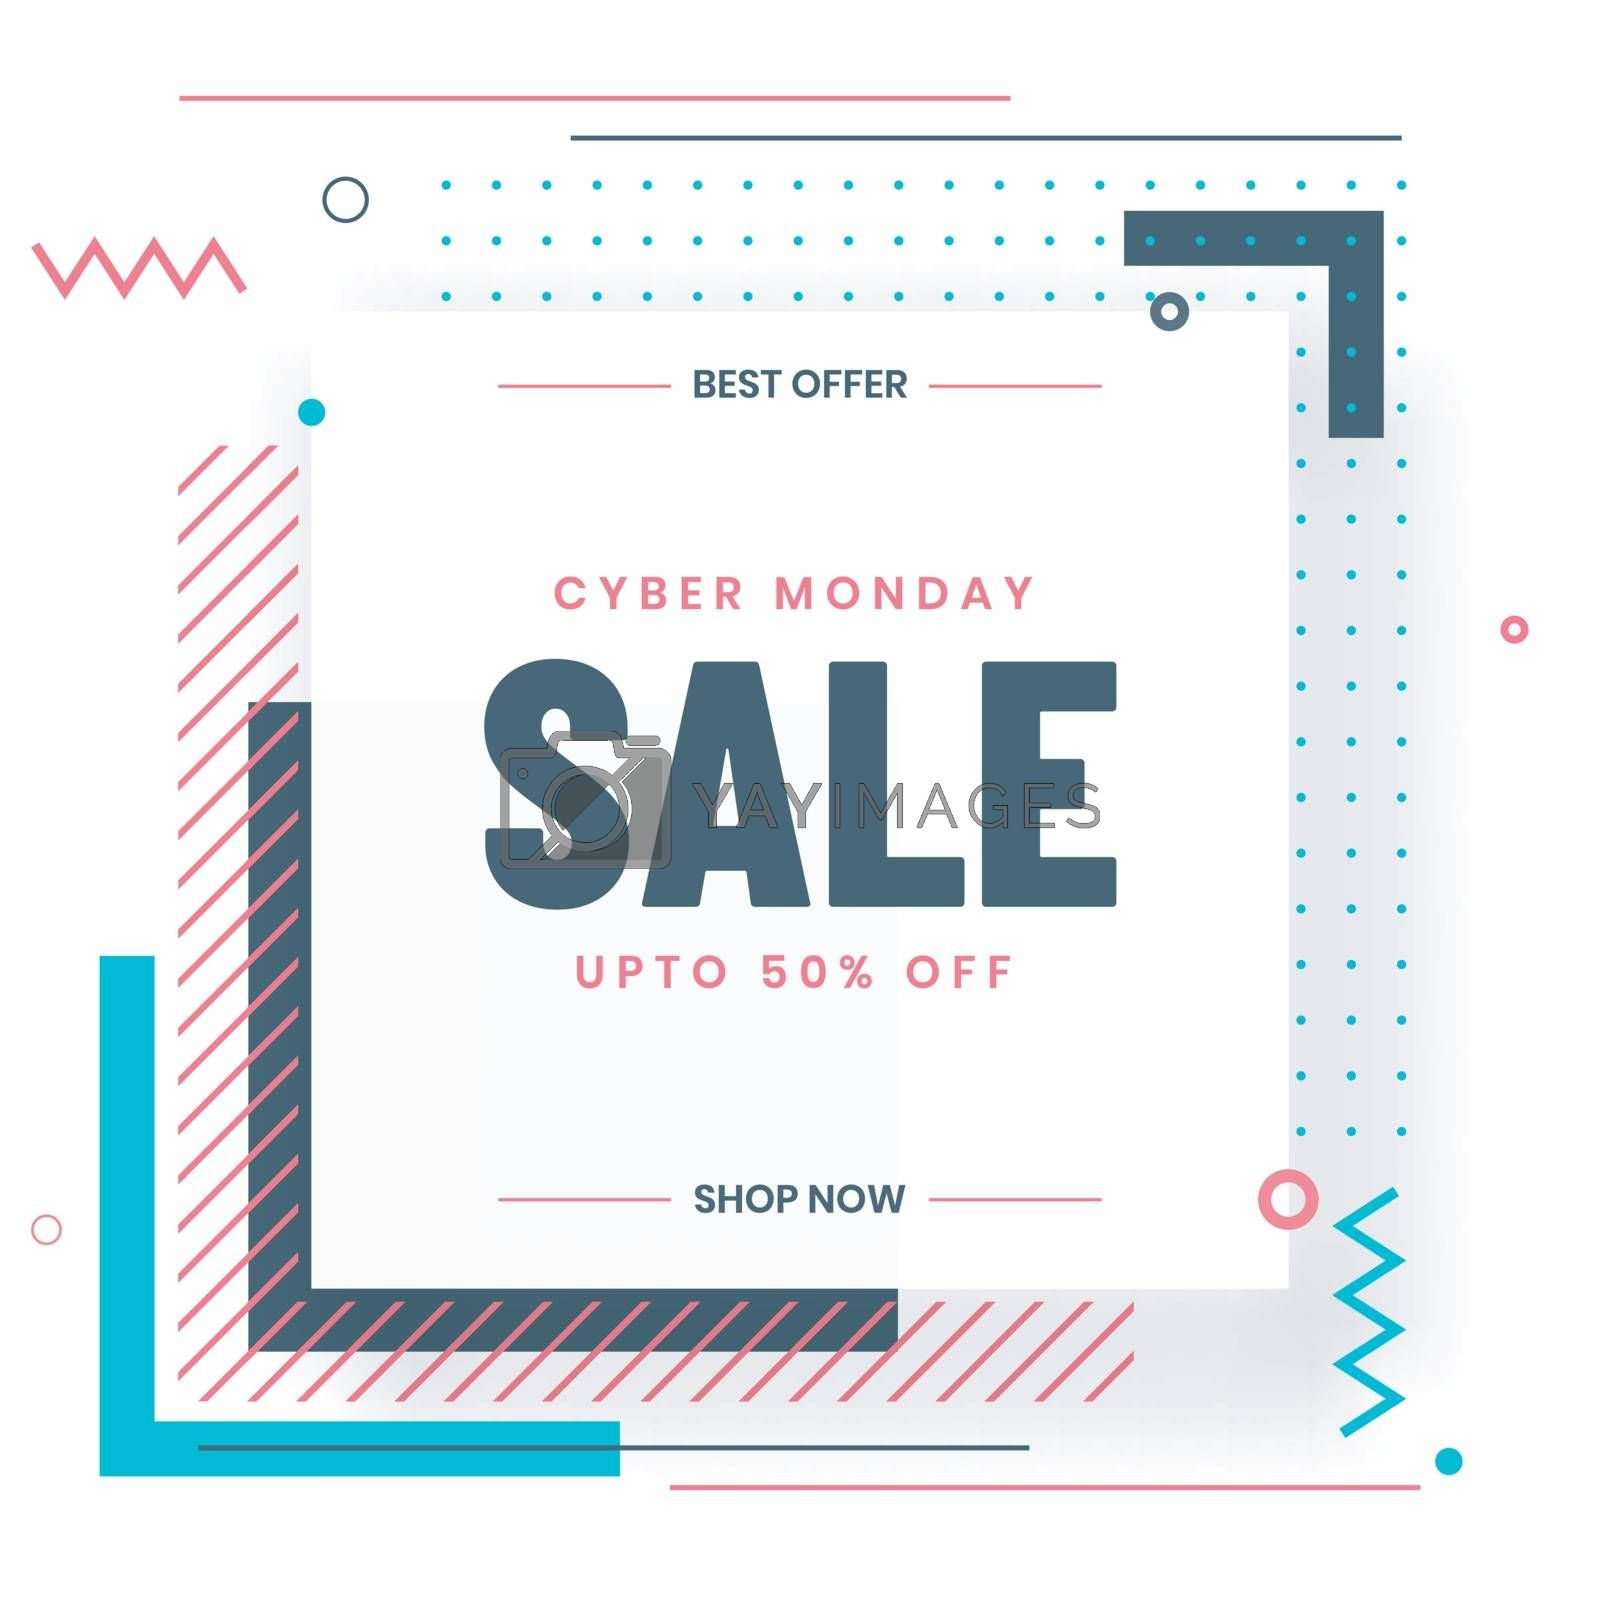 Cyber Monday Sale template or flyer design with 50% discount off by aispl